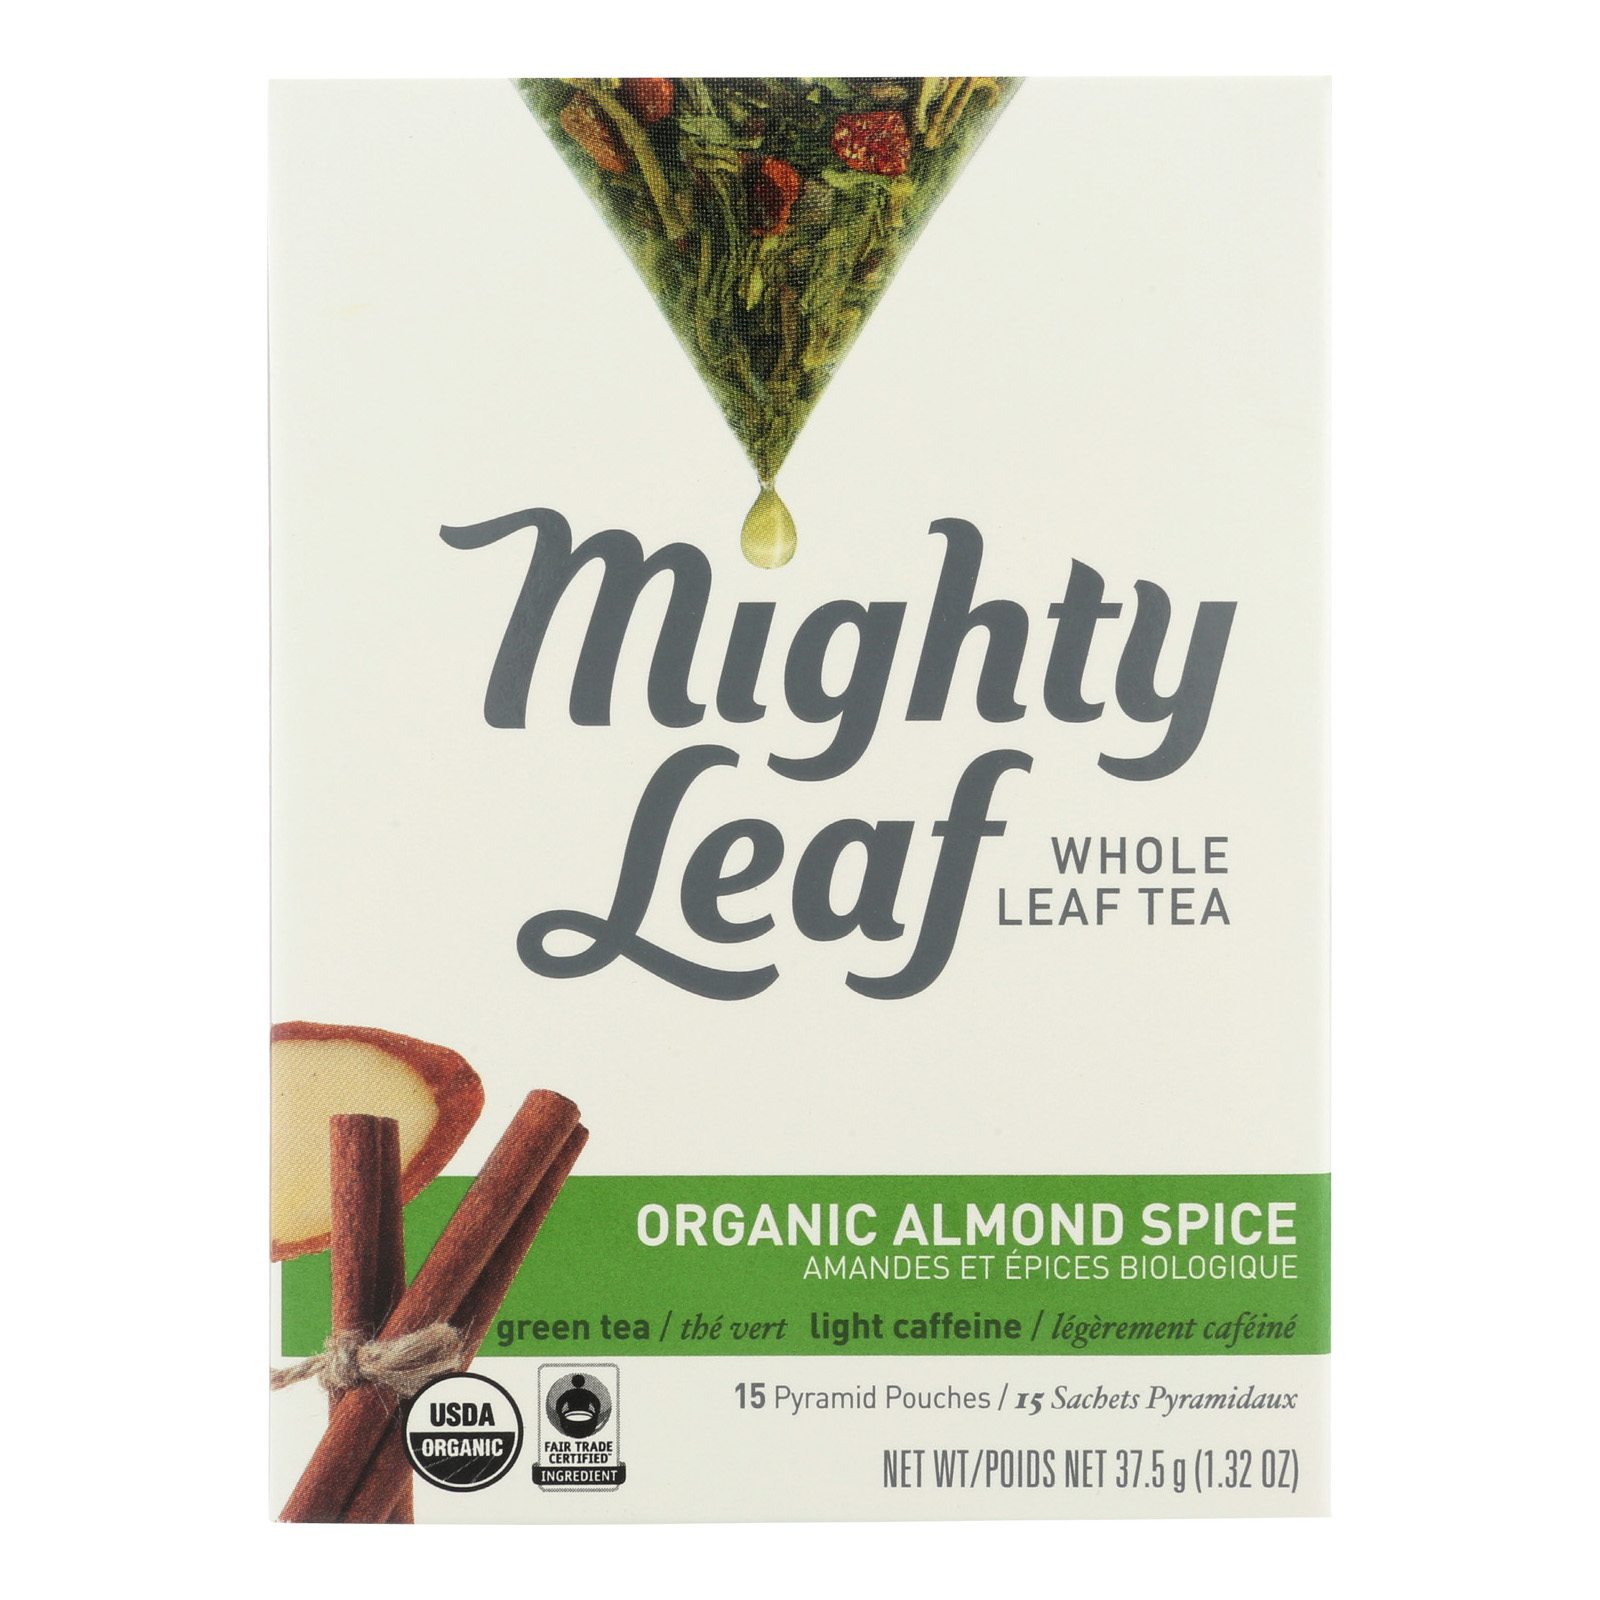 Mighty Leaf Tea Black Tea - Almond Spice - Case Of 6 - 15 Count